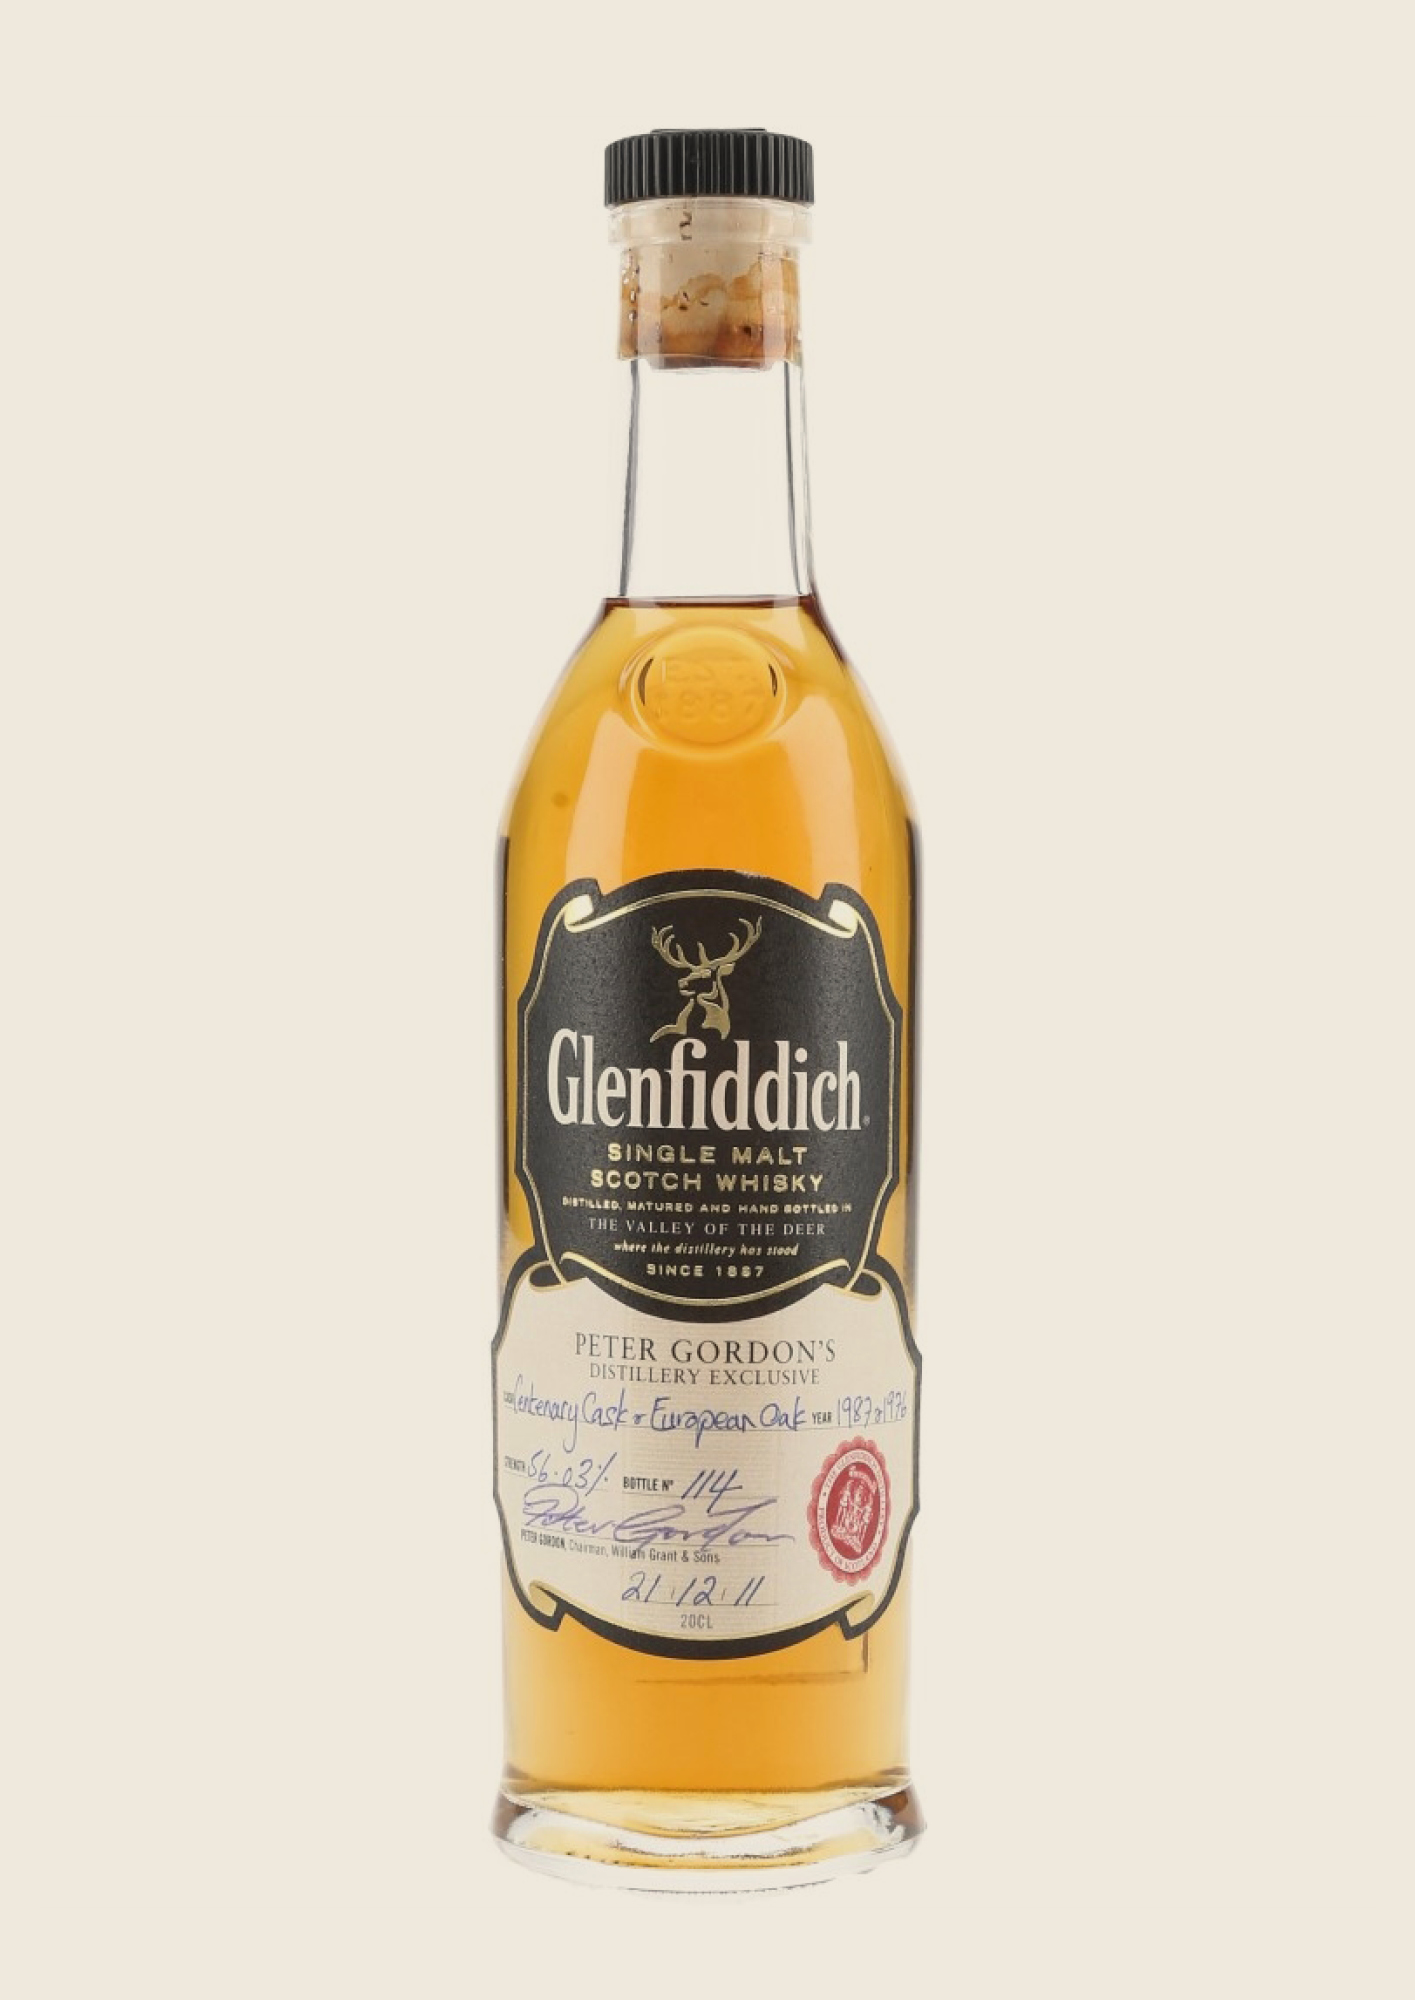 One of the most prized lots is a previously unreleased single malt from Glenfiddich